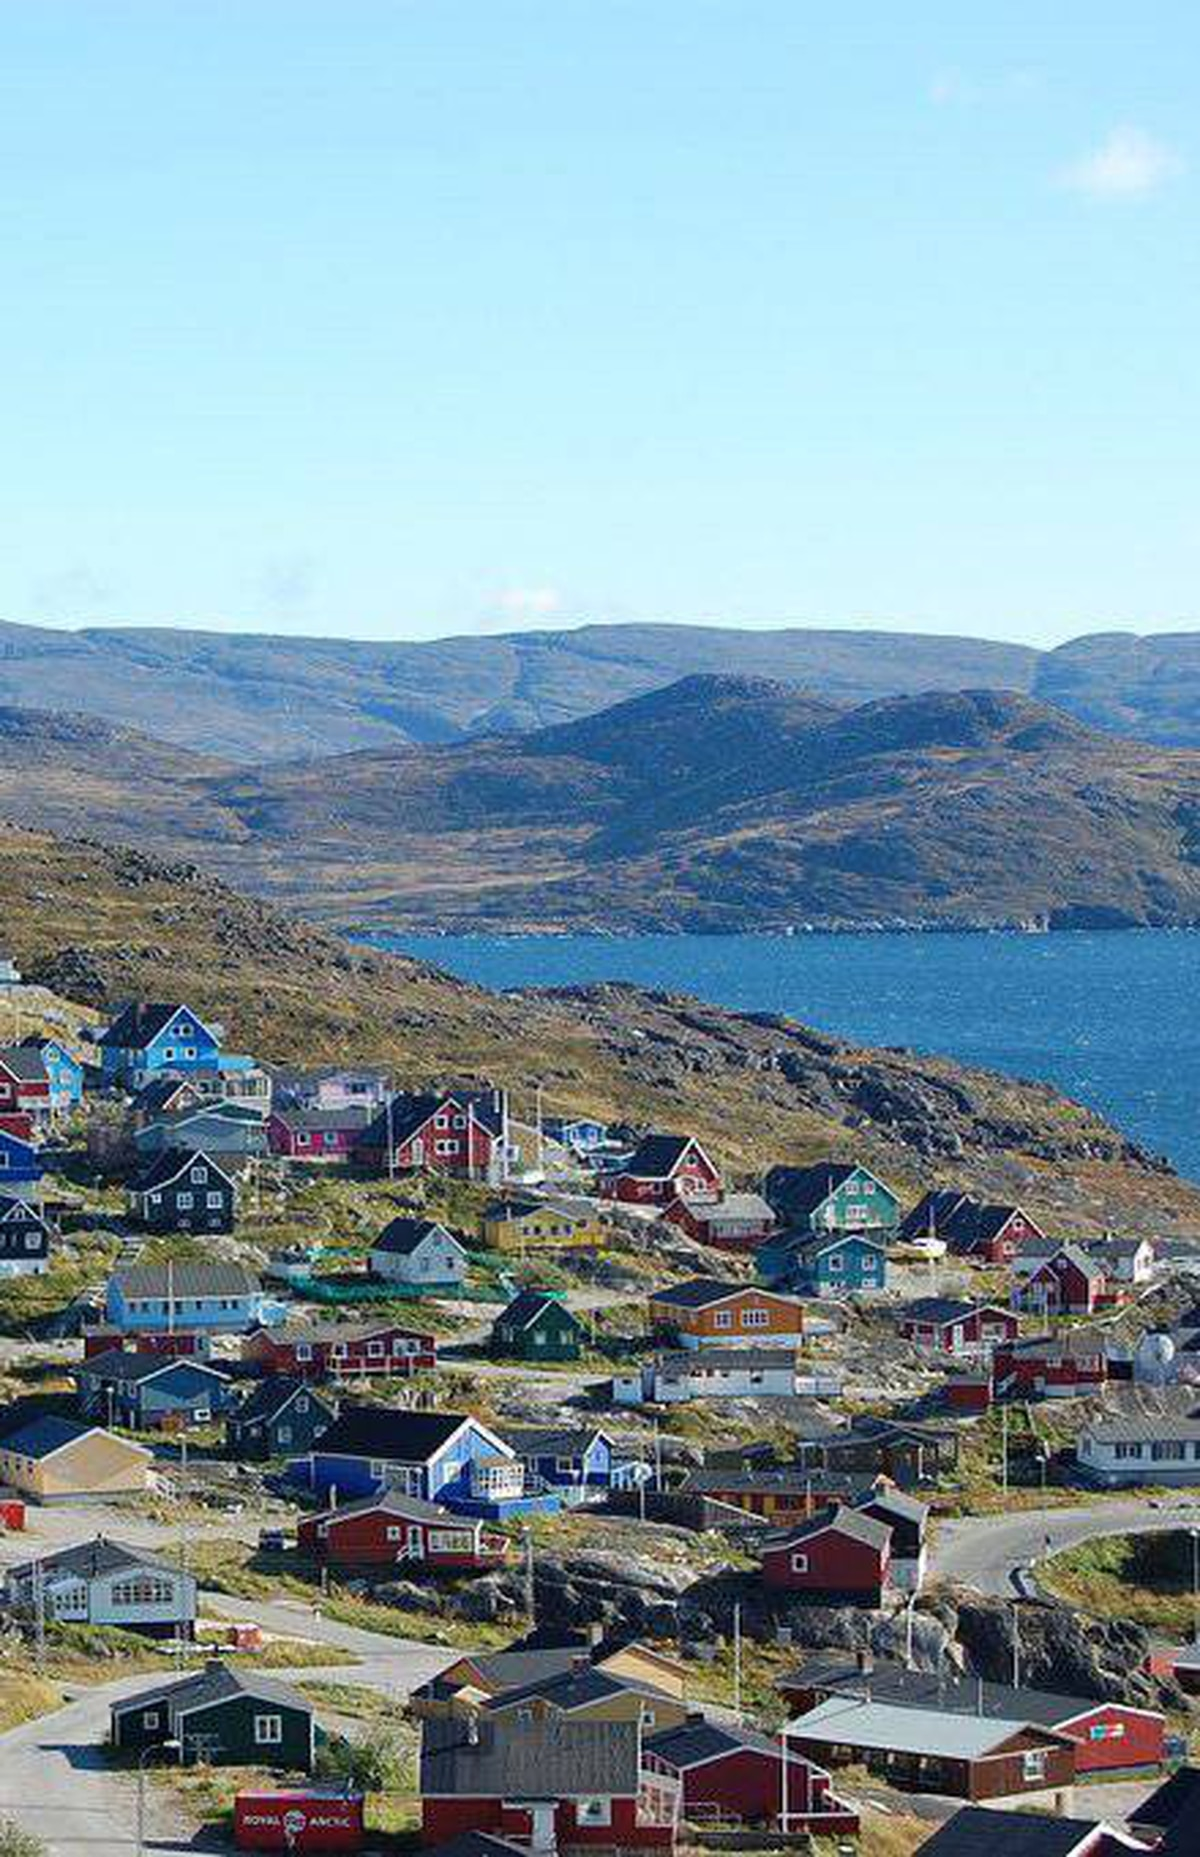 Qaqortoq, Greenland: The pristine air alone is an attraction of this Thule community of about 3,000 in South Greenland. It's an experience in Inuit culture, with arts and crafts, fishing, hiking, dog sledding, kayaking and whale watching. Who's visiting: Oceania Cruises